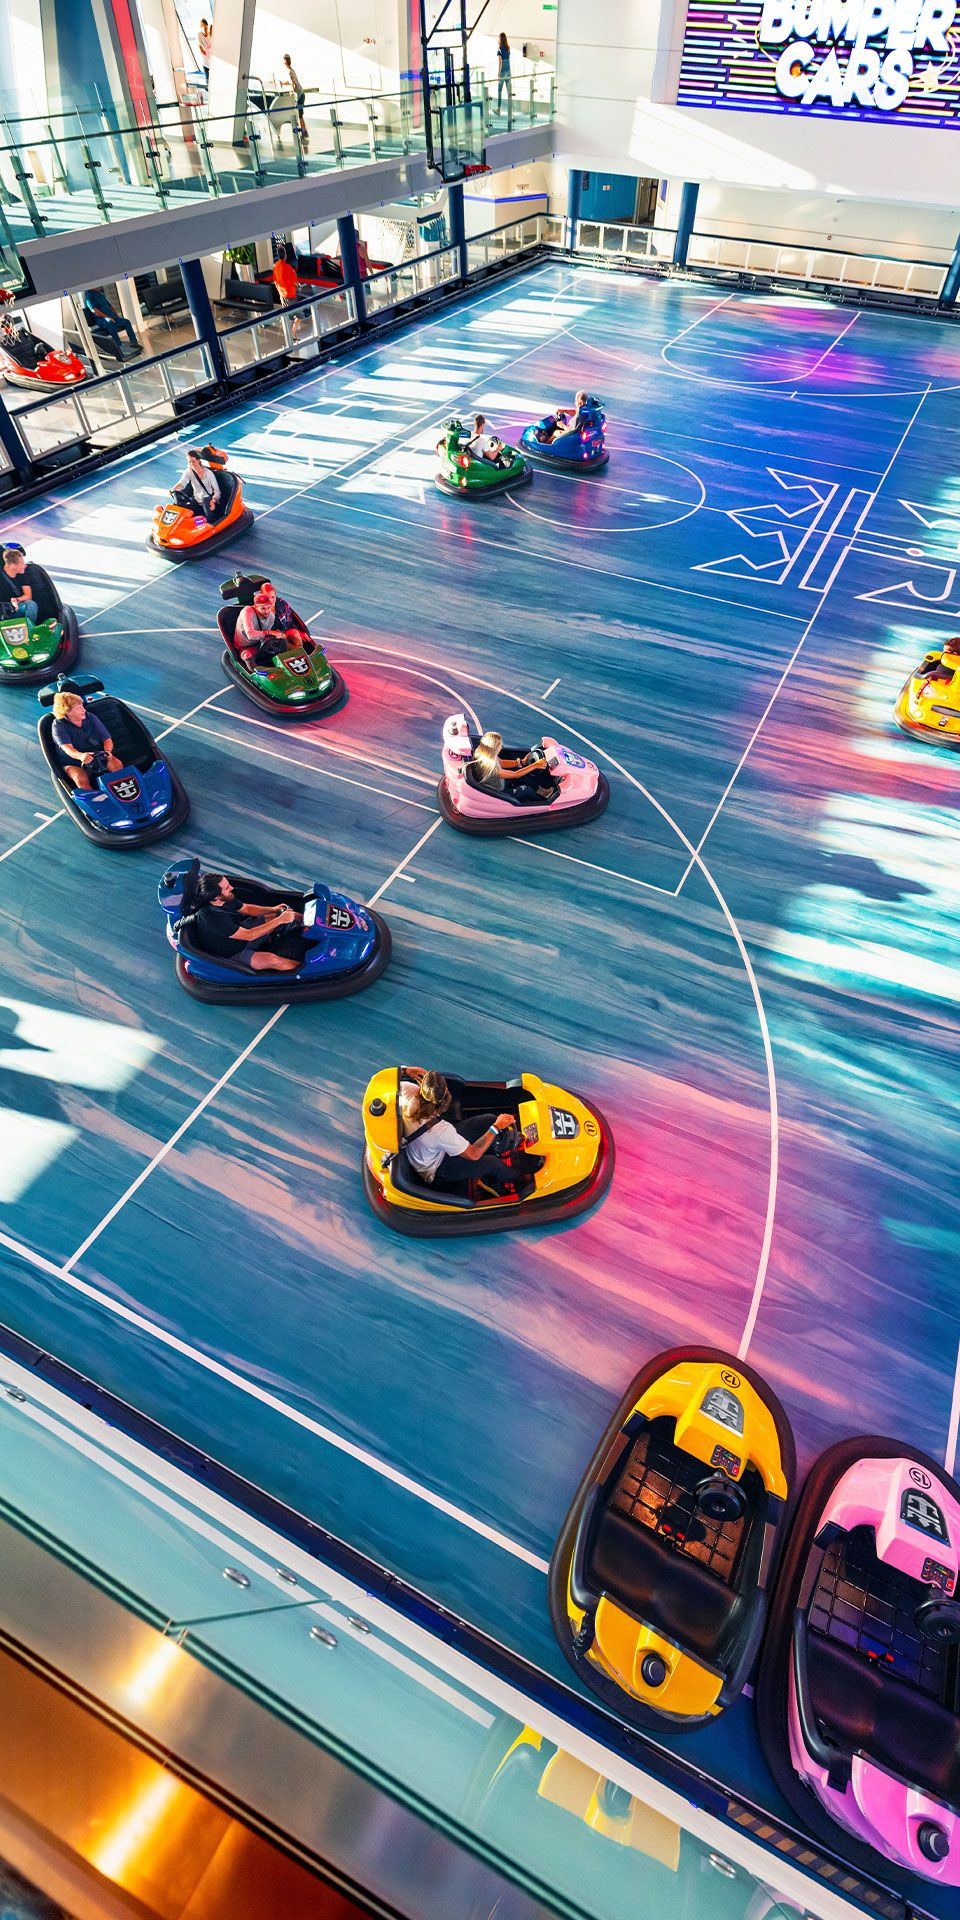 Ovation Of The Seas Rush Hour Gets A Thrilling Spin At The Largest Indoor Activity Space Ever To Set Sail In 2020 Cruise Ship Royal Caribbean Cruise Pacific Cruise